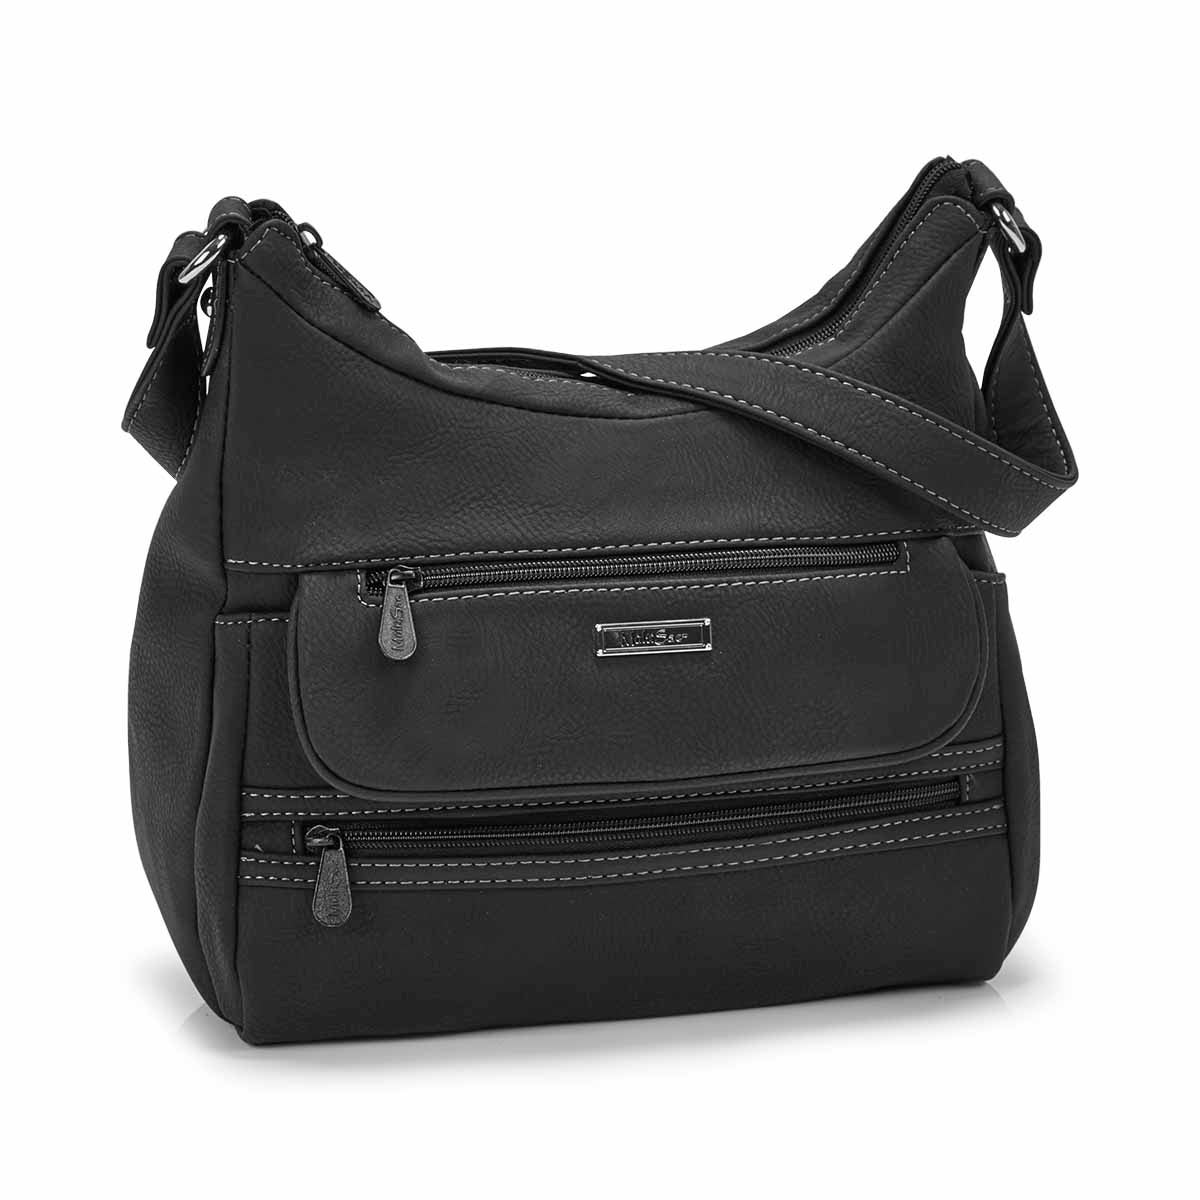 Women's ELEMENT black hobo bag